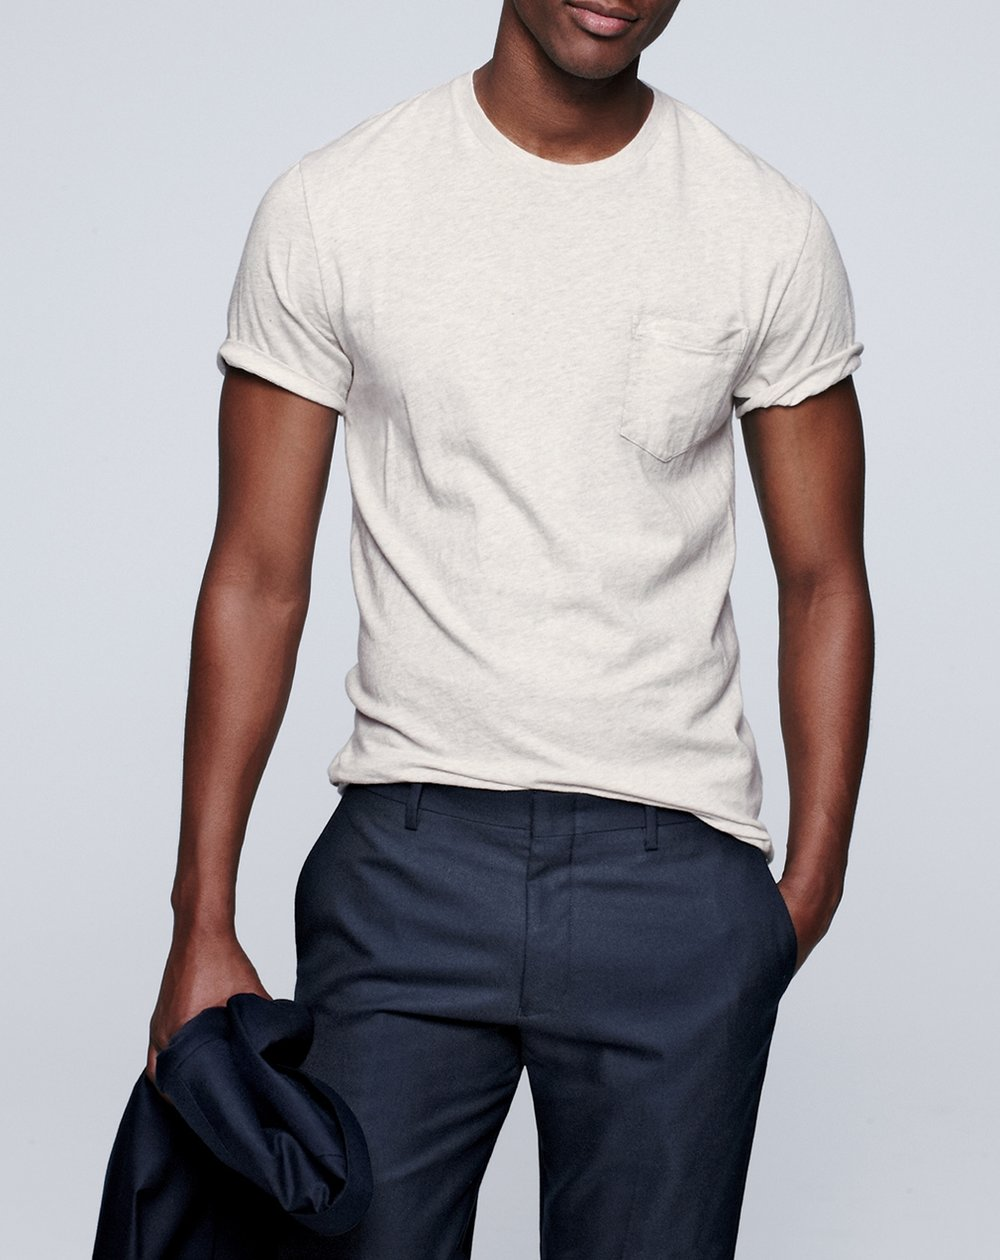 """3. J.CREW BROKEN-IN T-SHIRT - You guys know I'm all about simplicity. These """"Broken-in"""" t-shirts from J. Crew is absolutely that. My go-to basic tee, they are great wardrobe must- have for an everyday look. Oh, and did I mention they are insanely comfortable?"""